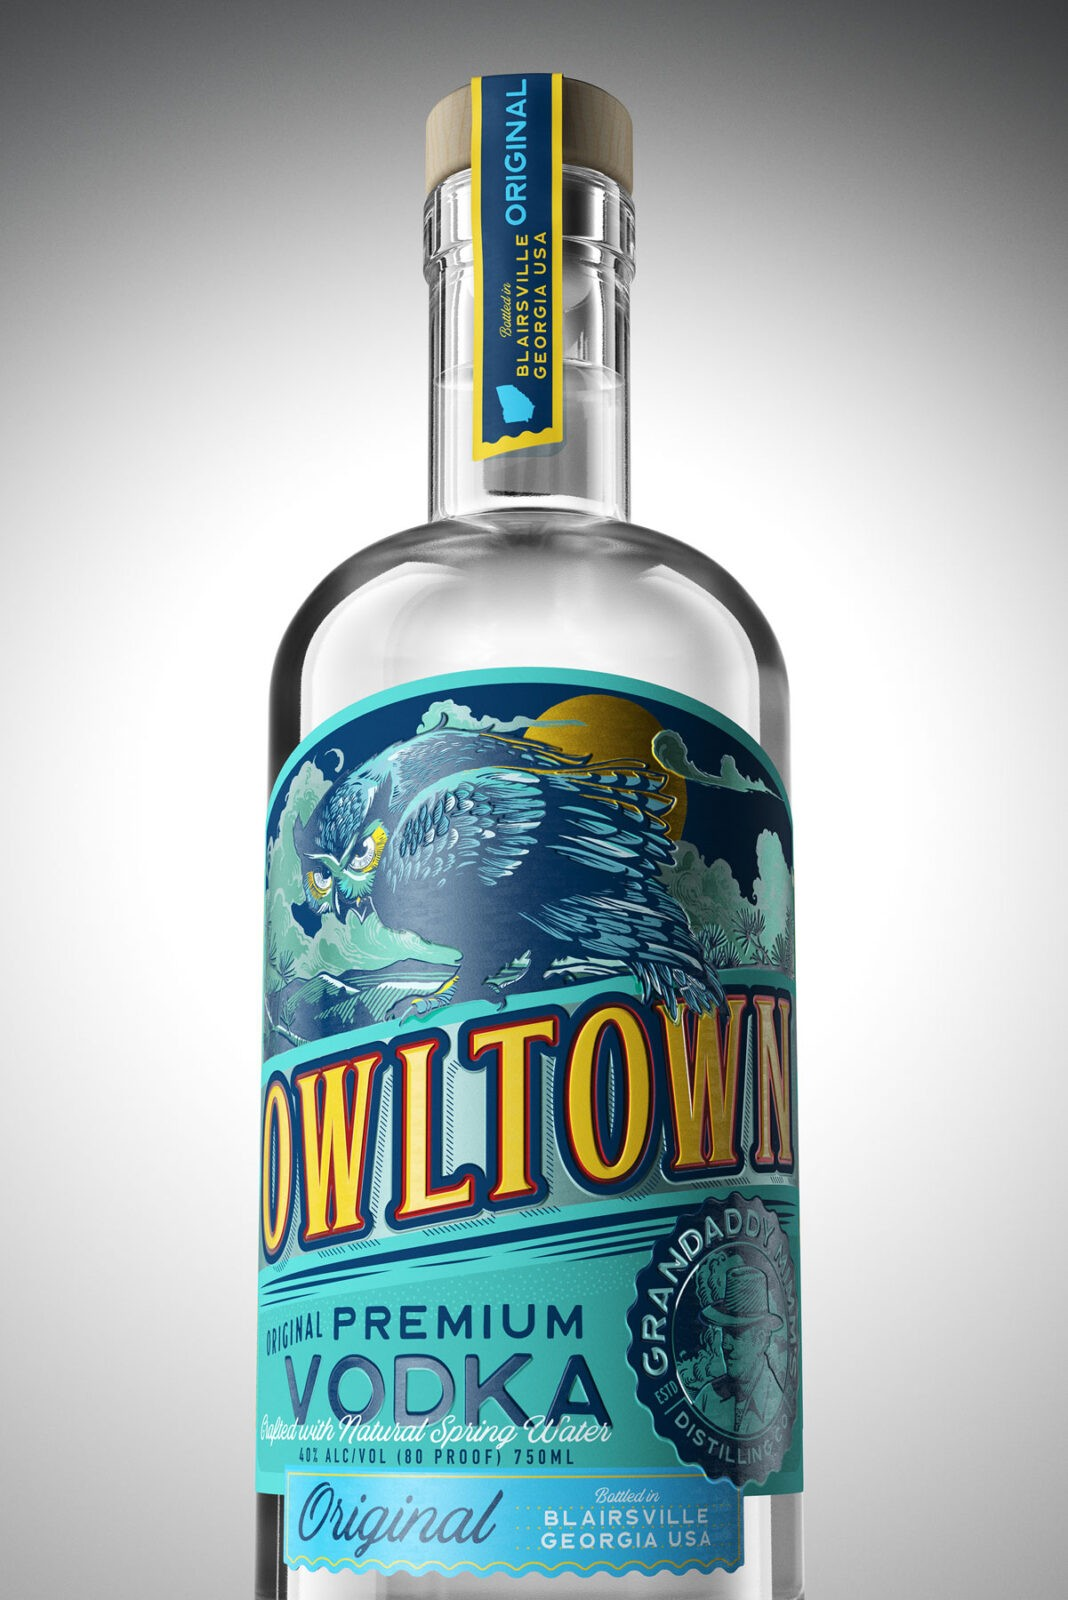 OwltownVertical_SlidesOriginal